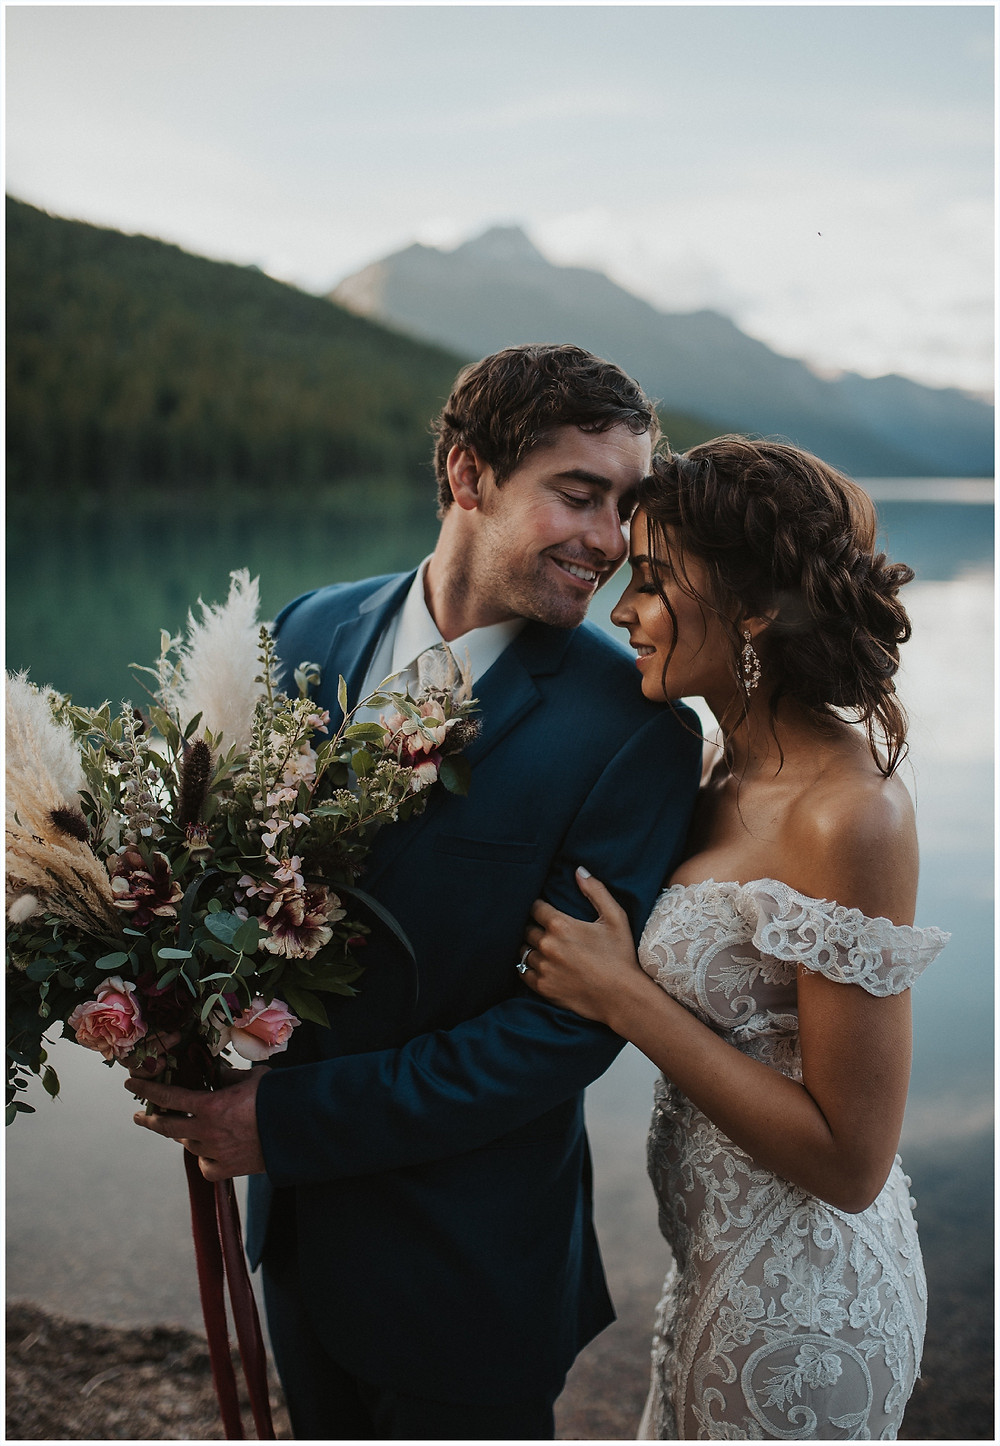 bouquet inspiration, bridal bouquet, Glacier National Park, Elegant and Romantic Styled Elopement, Katy Shay Photo, Montana Wedding and Elopement Photographer, Glacier National Park Photographer, Moody photos, glamorous wedding, Navy, maroon, coral, lace wedding dress, Allure bridal gown,  Bozeman photographer, Missoula photographer, Kalispell photographer, Glacier NP, Bowman Lake, styled shoot, elopement, elopement inspiration, bridal portraits, bridal hair and makeup, bride and groom photos, mountain elopement